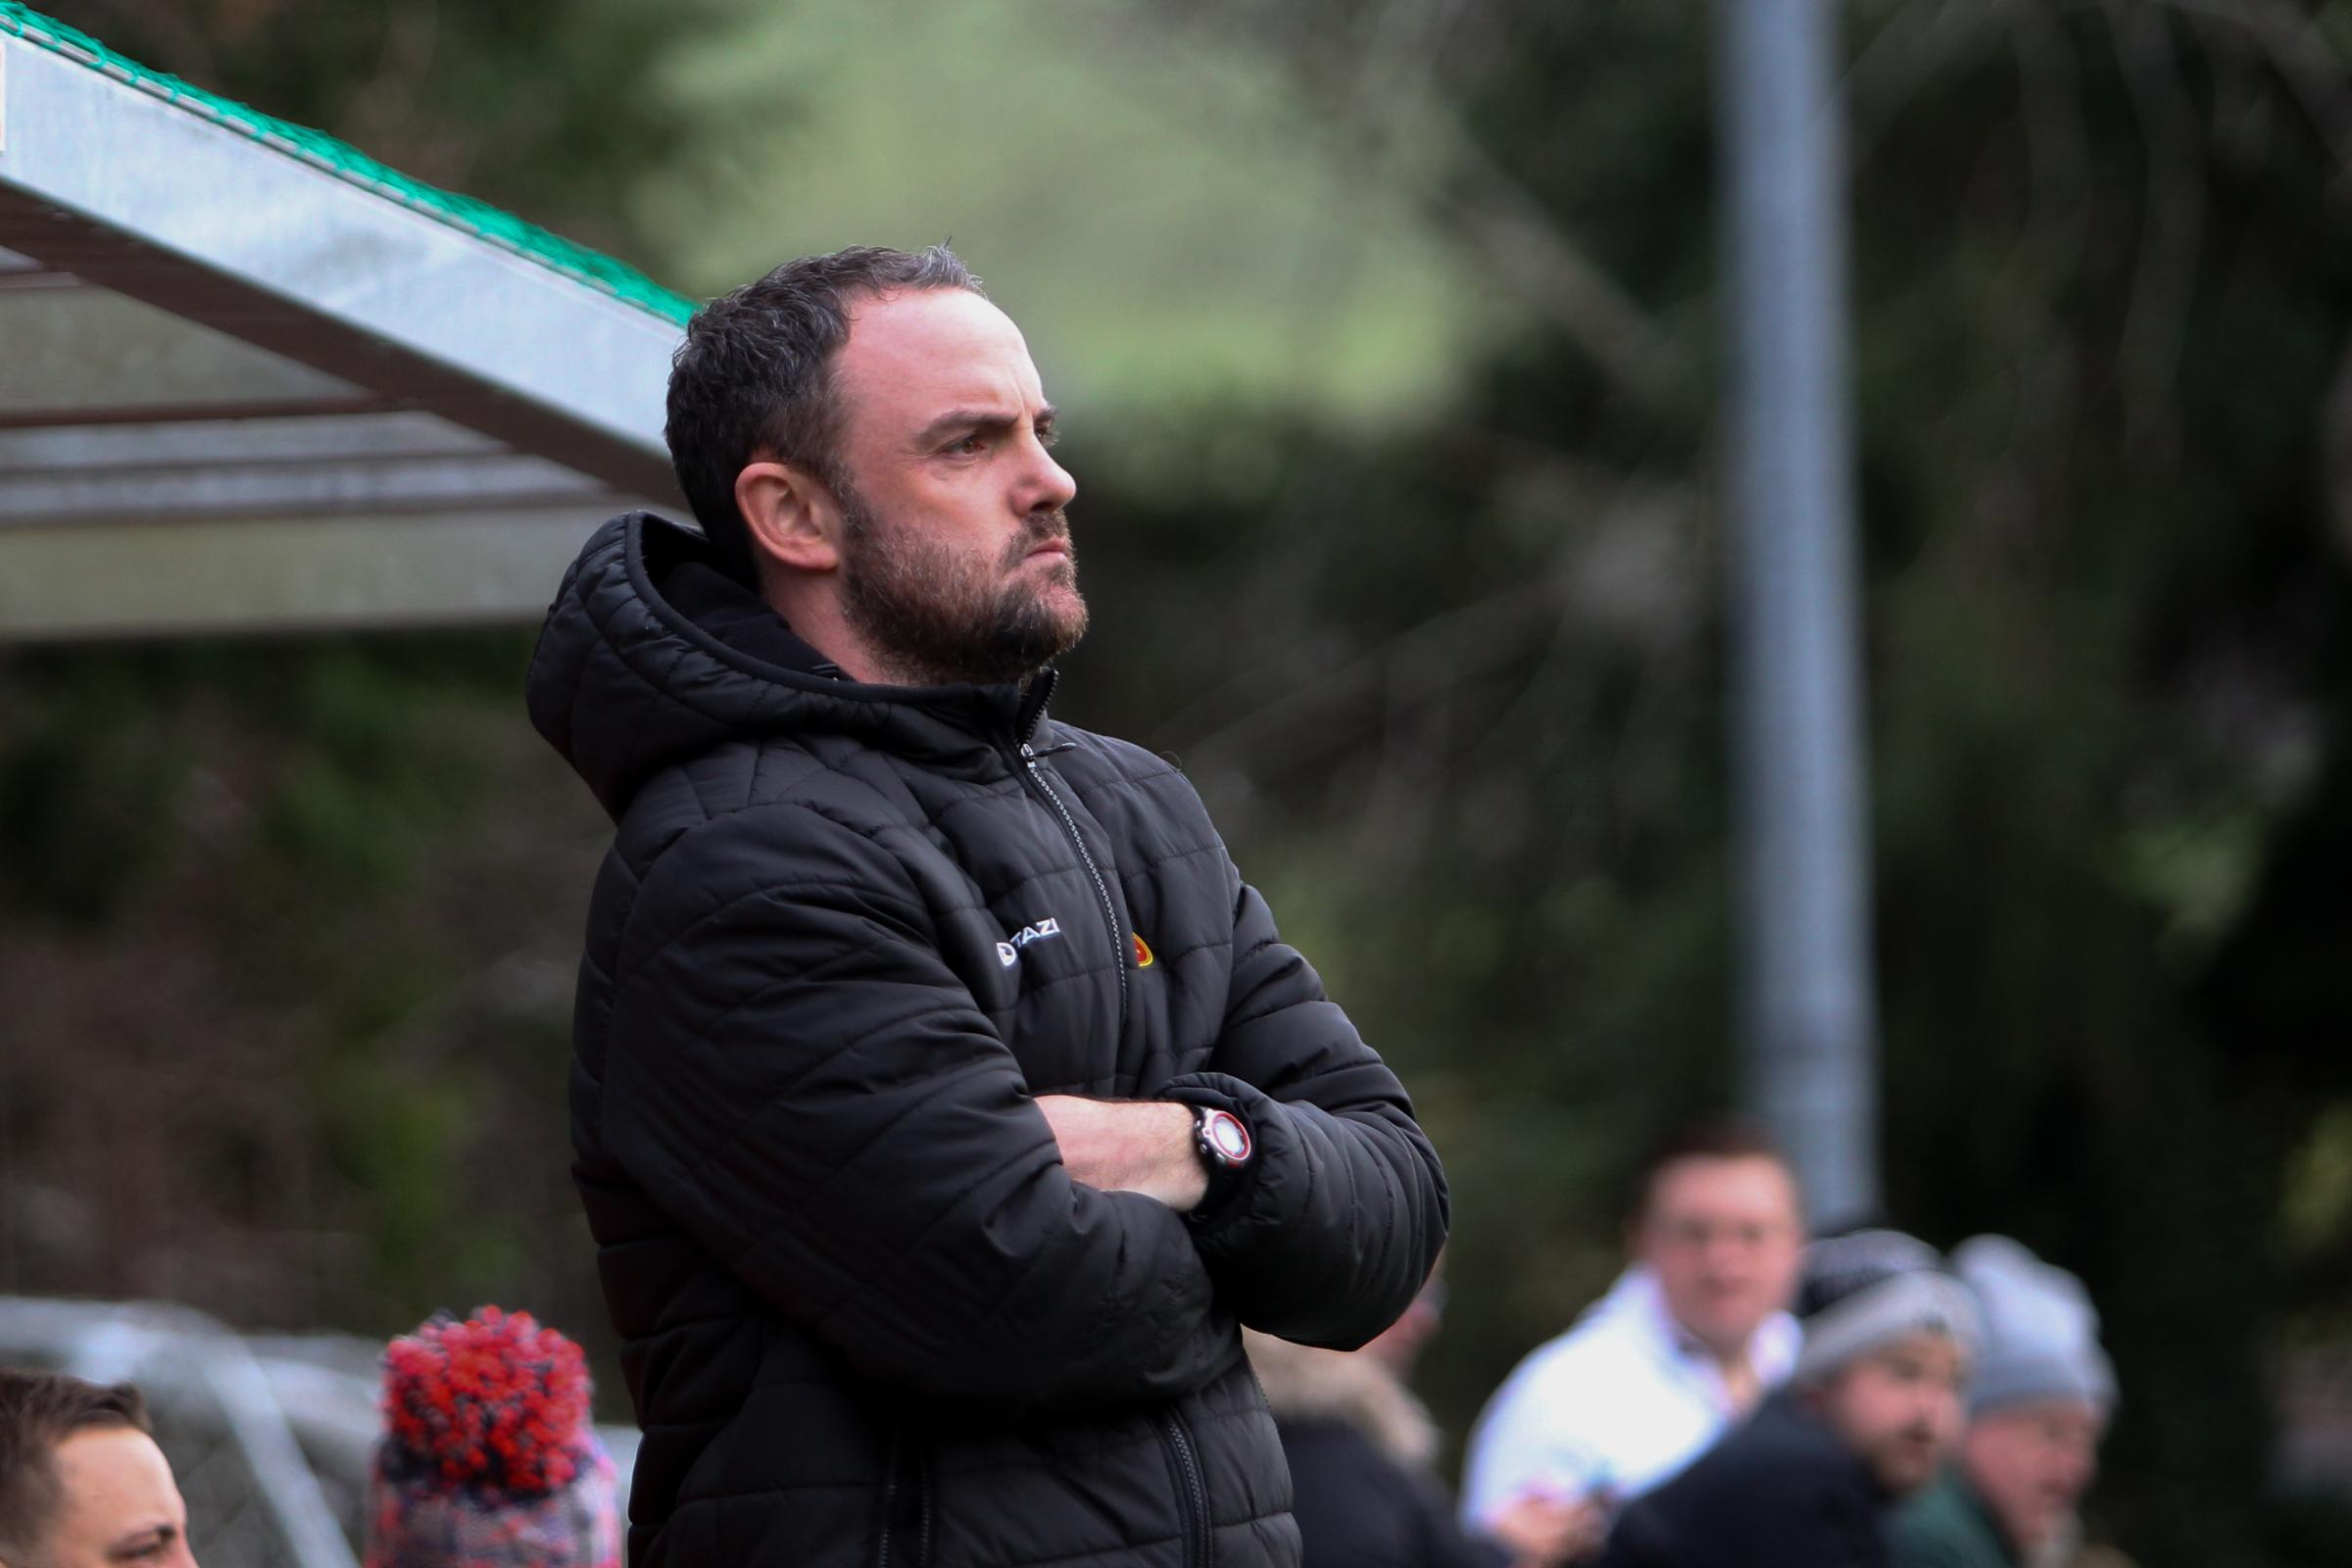 Newtown boss Chris Hughes during the JD Welsh Premier fixtuyre between Newtown AFC and The New Saints (TNS) at Latham Park on Tuesday, December 26, 2017...Pic: Mike Sheridan/County Times.MS851-2017.